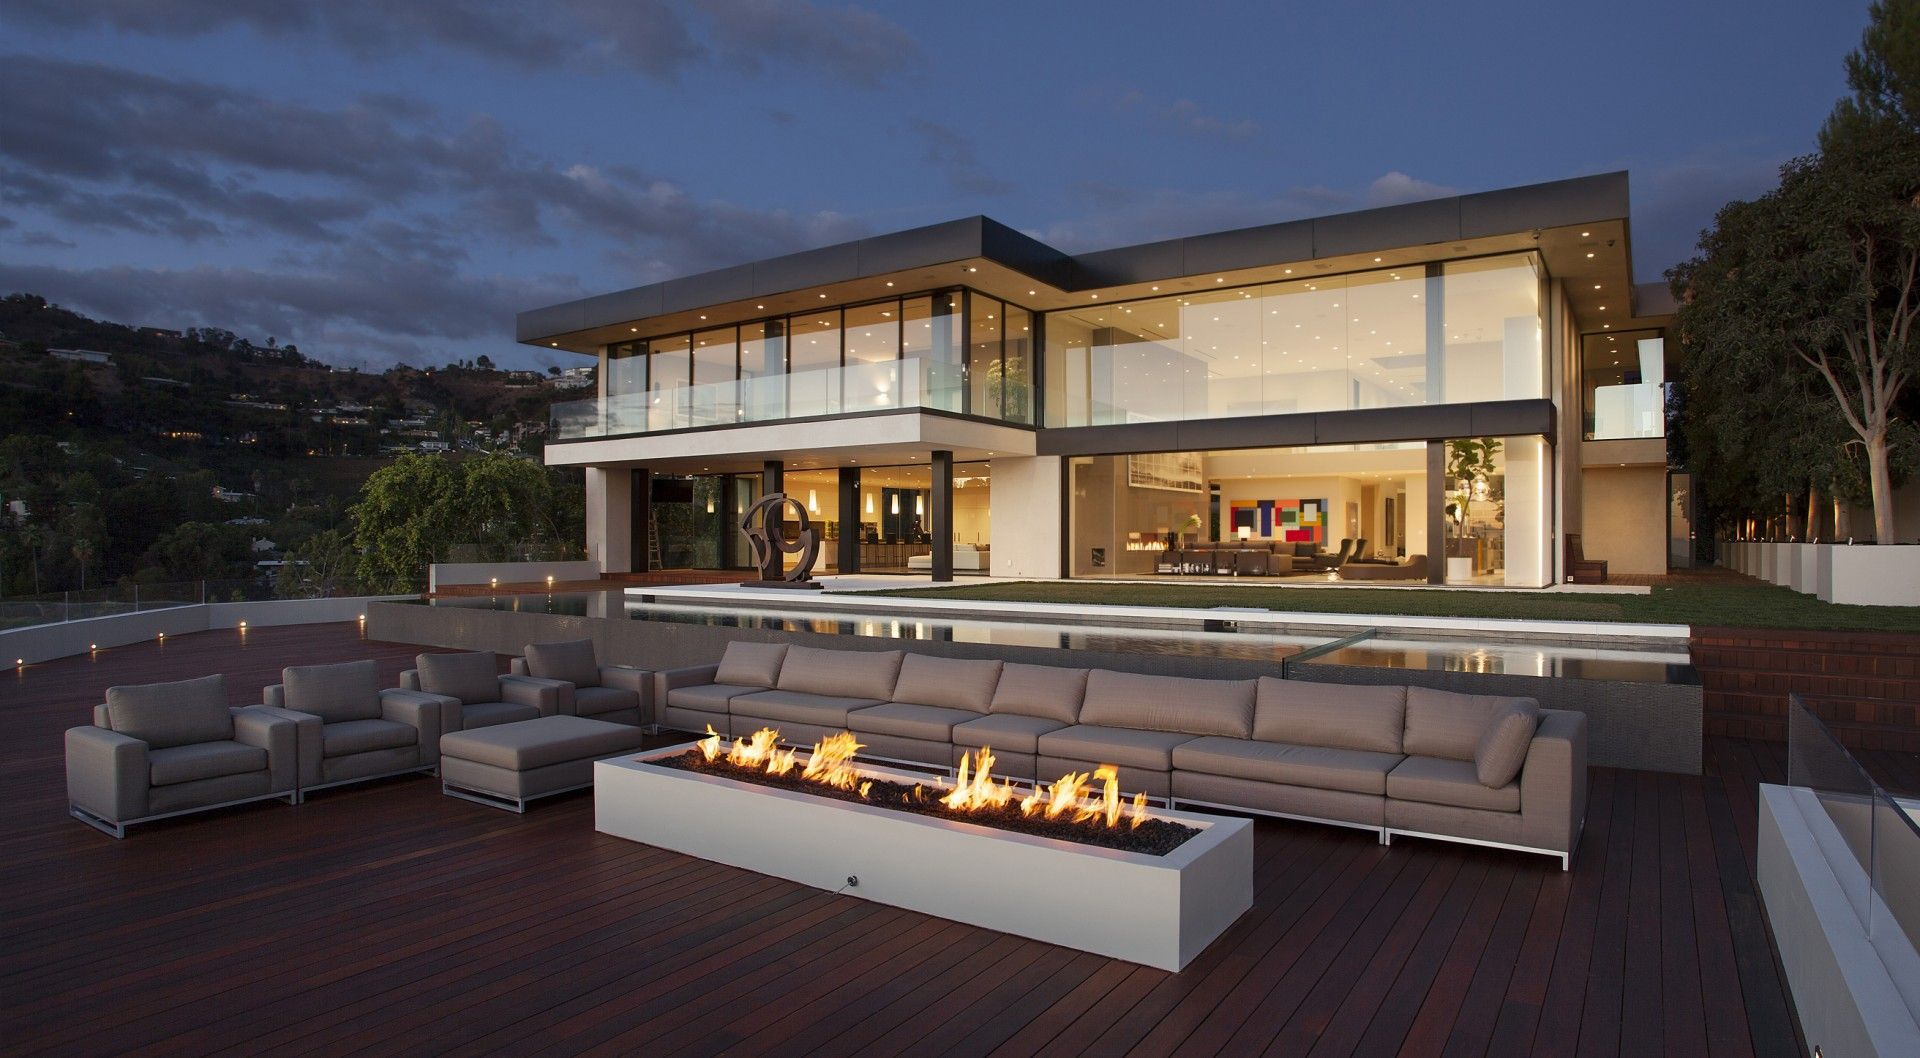 Modern Architecture Los Angeles los angeles, laguna beach architecture projects | mcclean